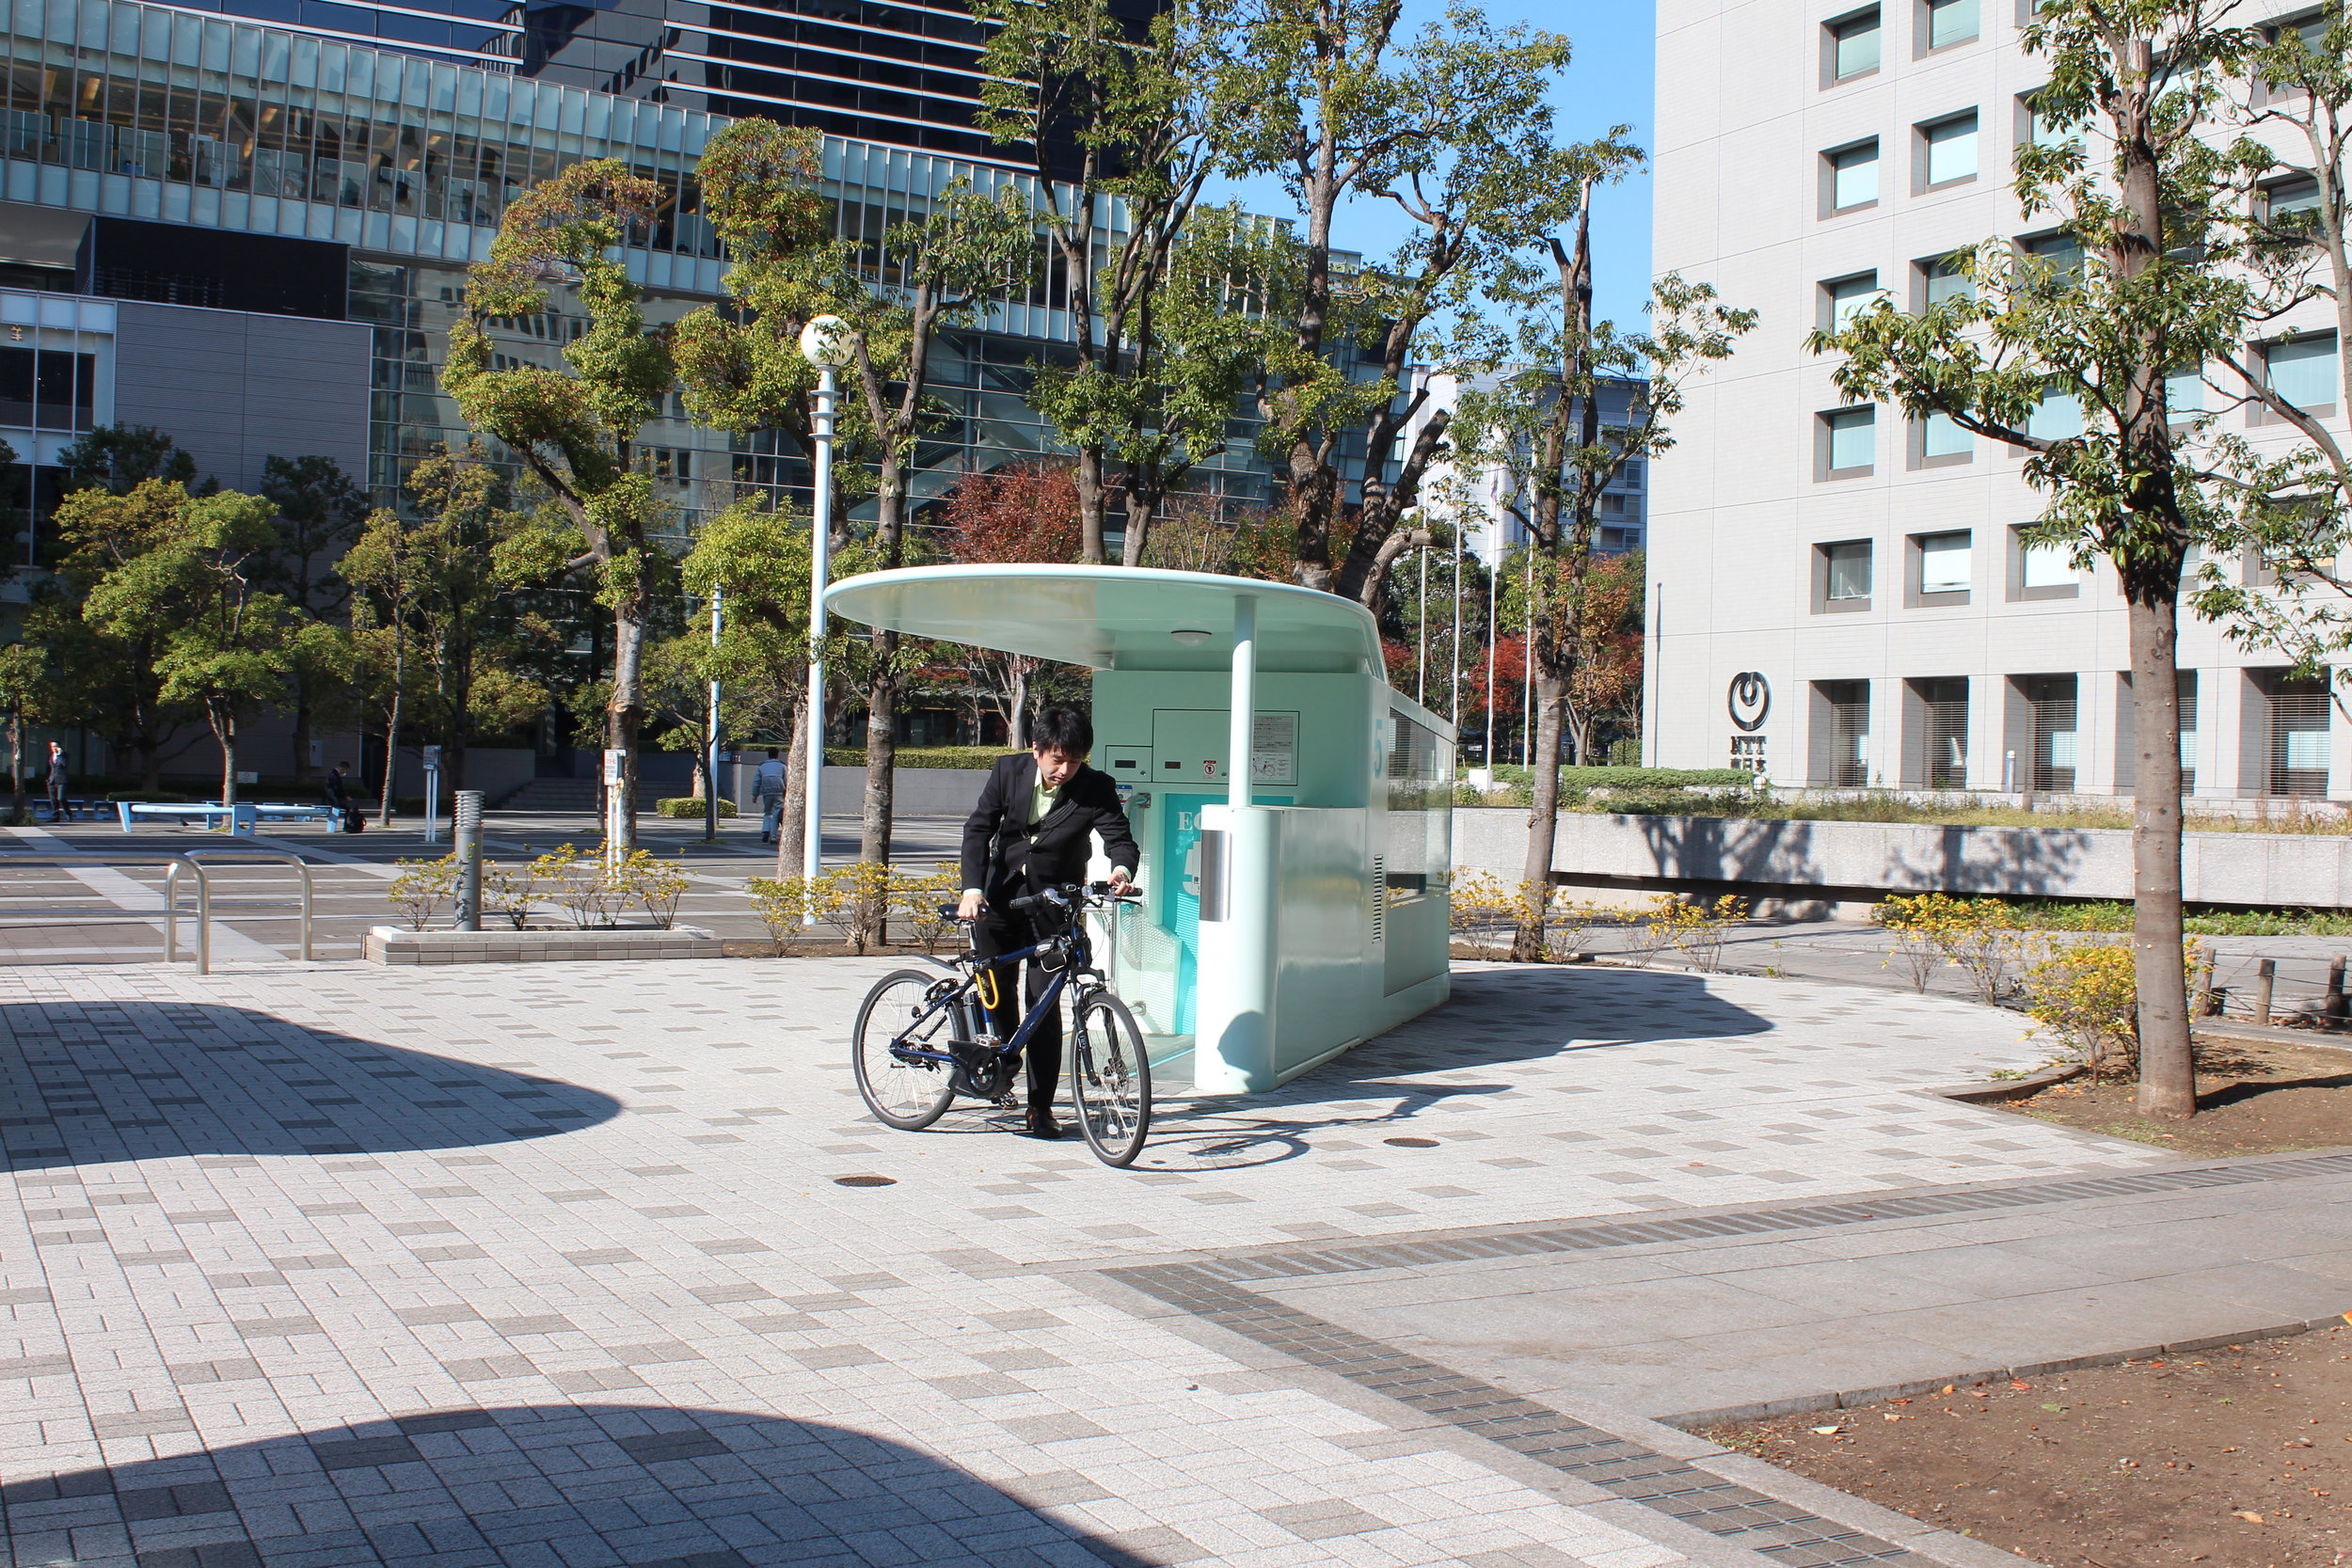 Amazing Tokyo bike parking pulls bike into device and in seconds it's in a secure underground carousel.26.JPG